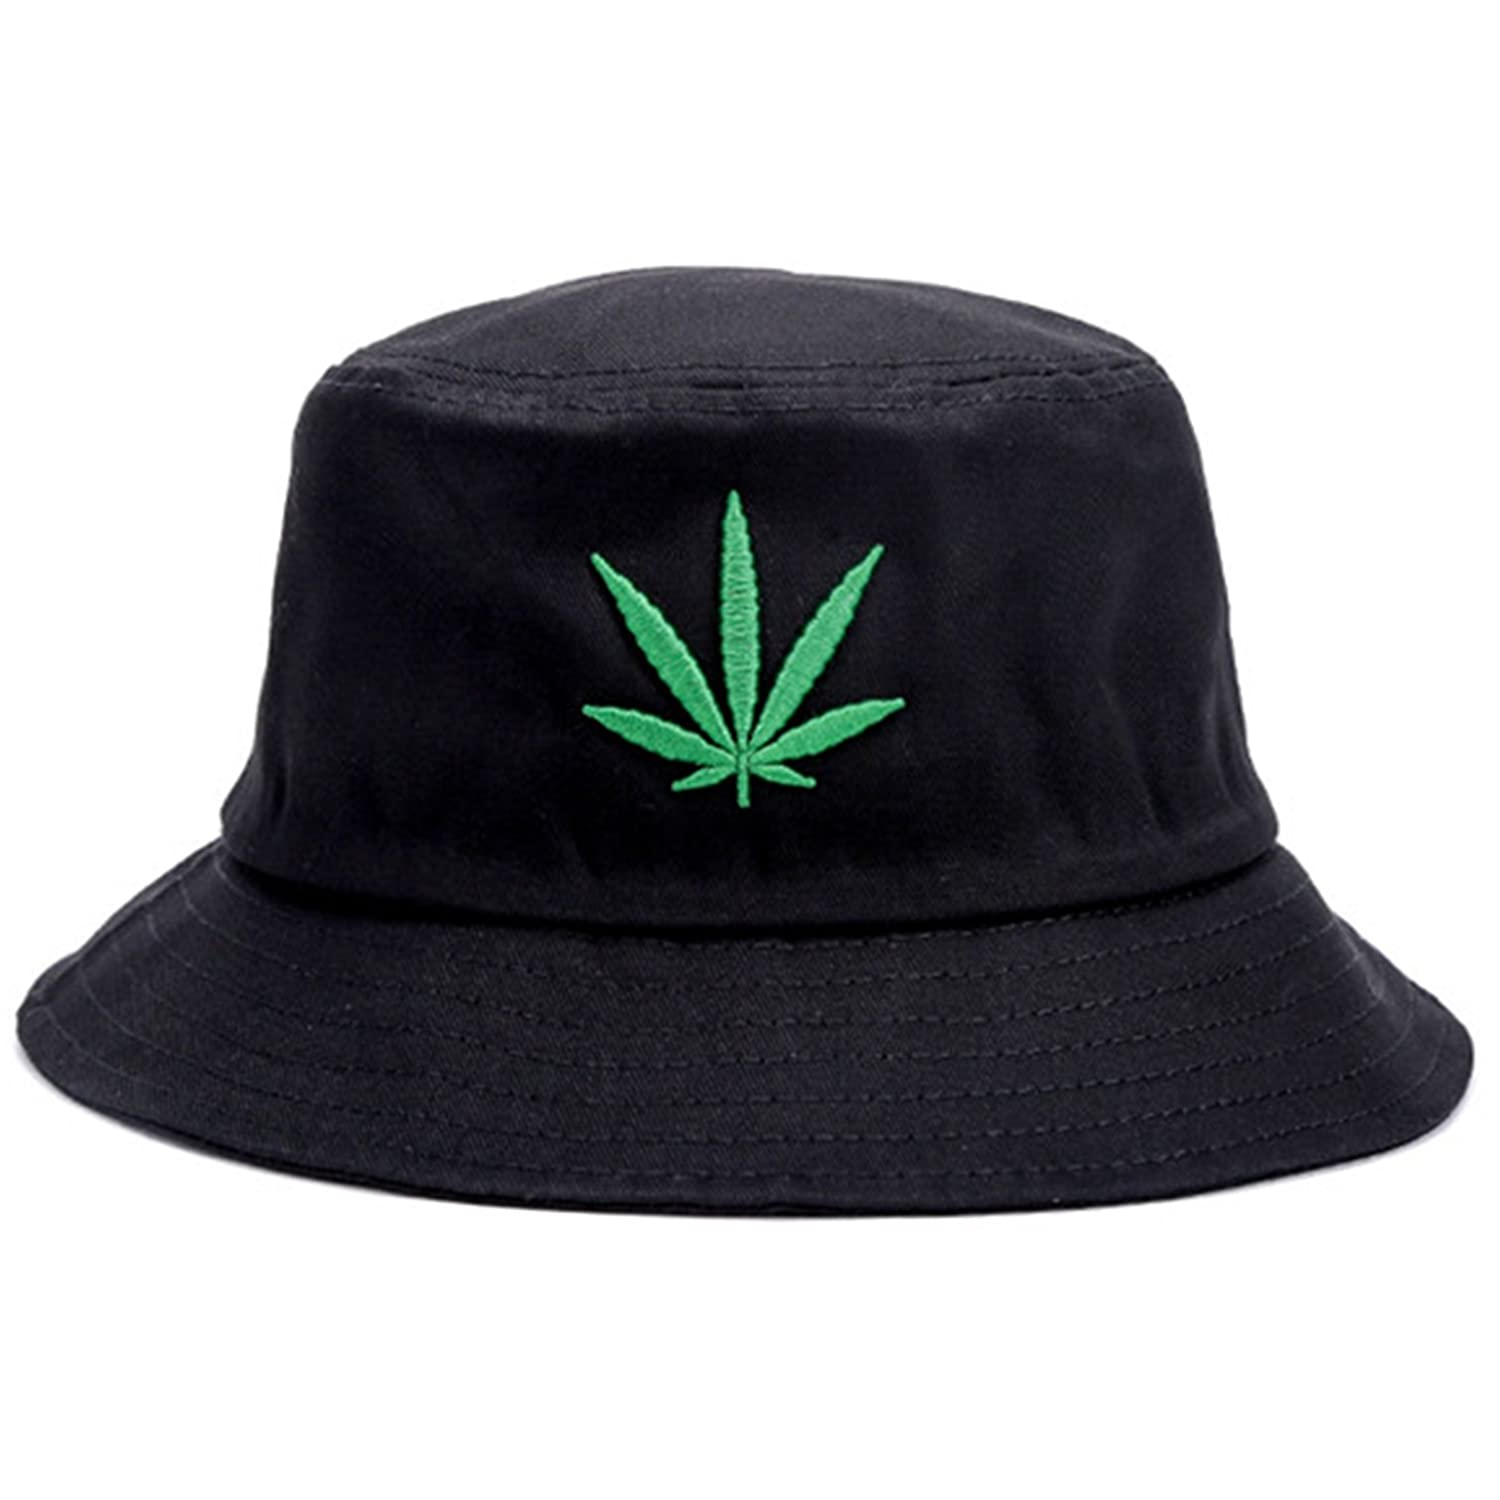 a377d697da8 Bucket Hat Cap Marijuana Weed Leaf Cannabis - Foldable Snapback Men Women  (Black) at Amazon Men s Clothing store